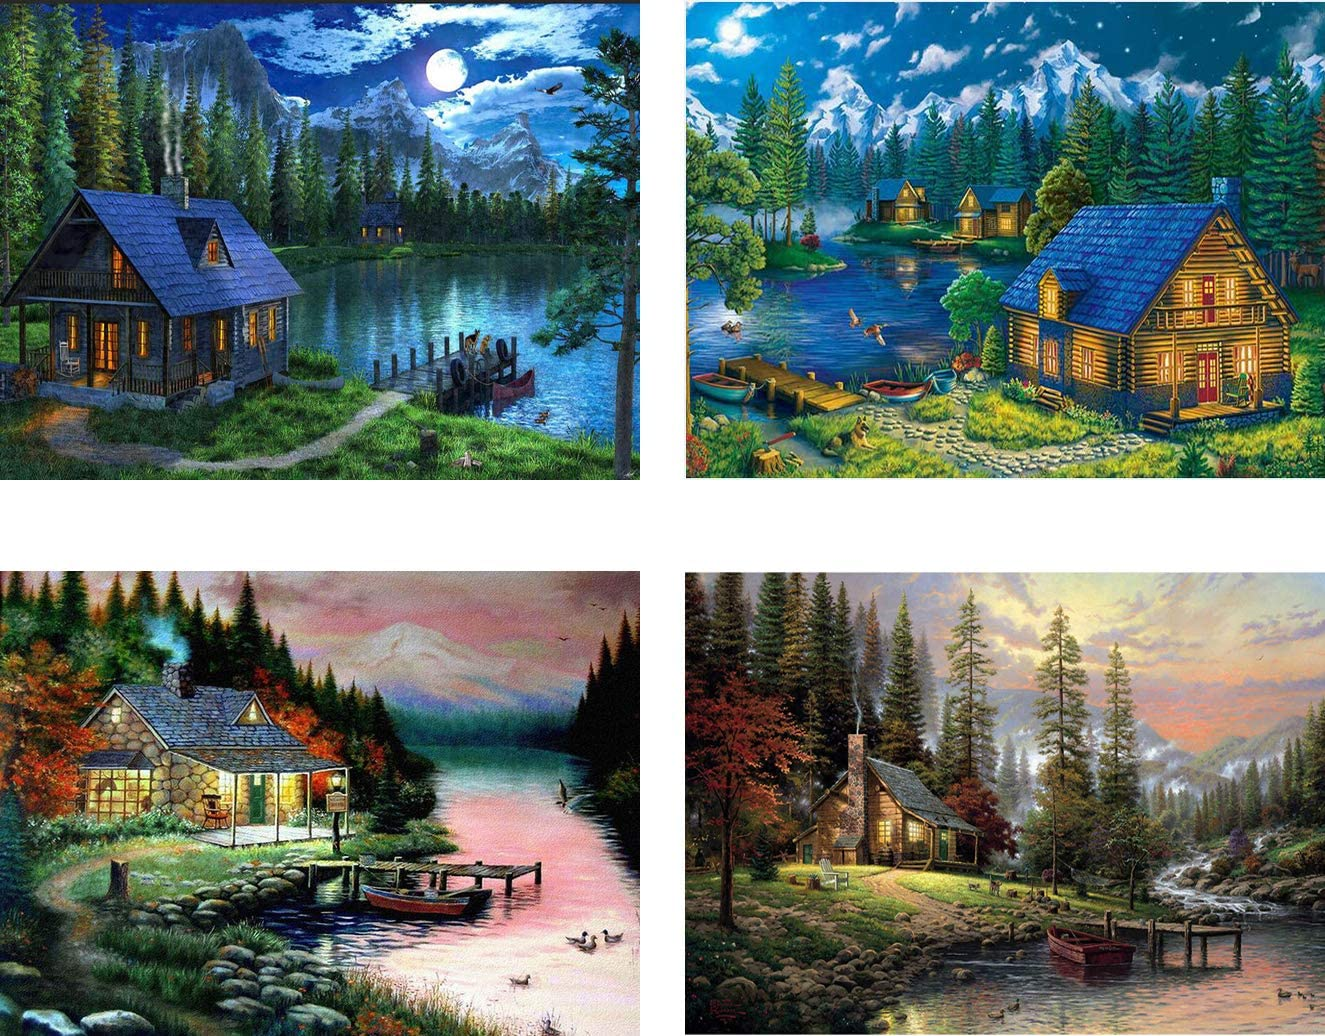 OurSuperDeals 5D Full Drill Diamond Art Painting Kits DIY Kit for Adult Landscape Mountain Cabin Lake Home Wall Decor 11.8x15.8inch 4 Pack